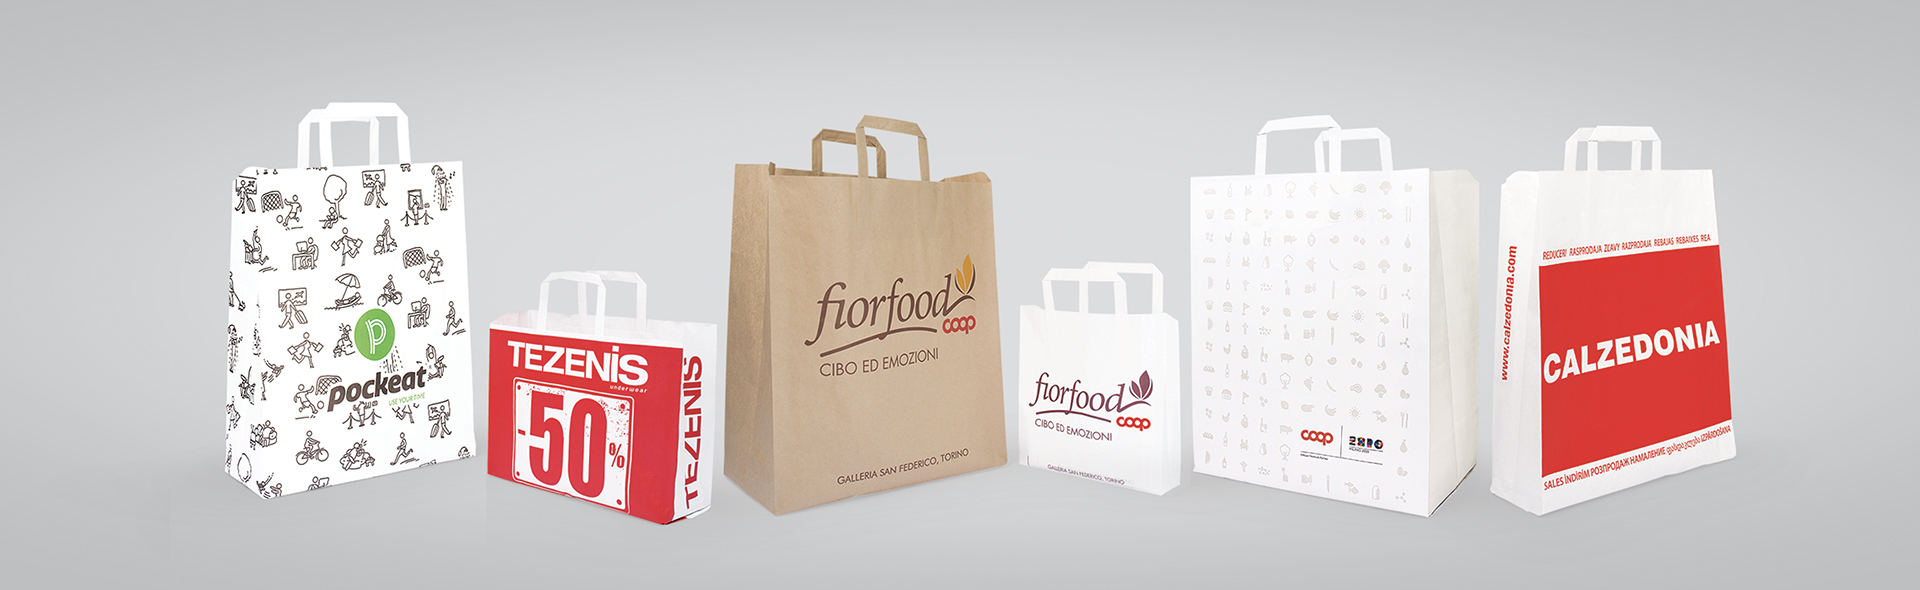 referenze_01_slide_POCKEAT_TEZENIS_FIORFOOD_COOPEXPO_CALZEDONIA